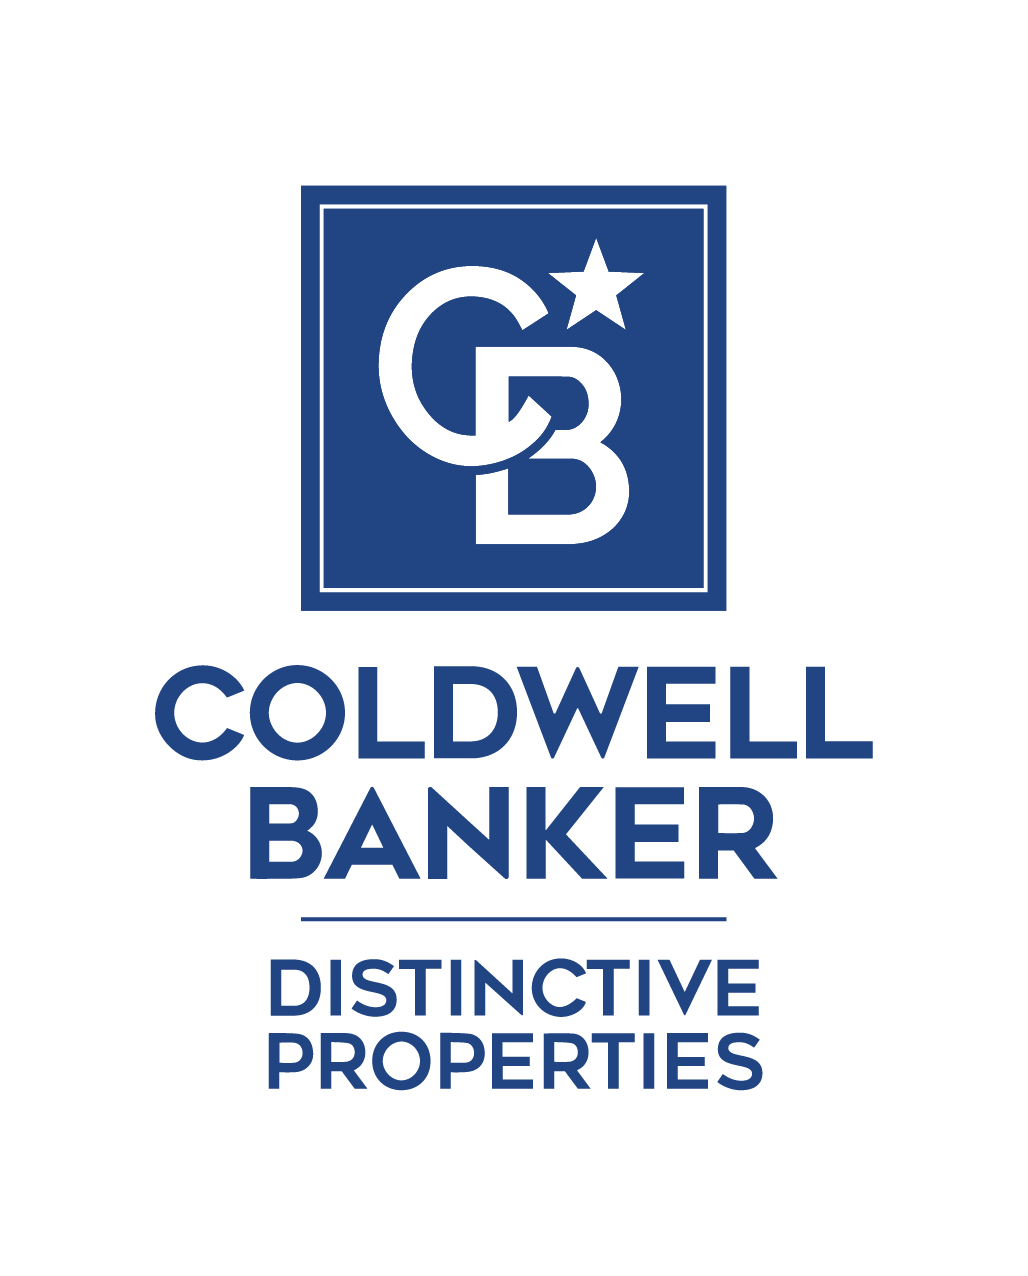 Angela Loewen - Coldwell Banker Distinctive Properties Logo